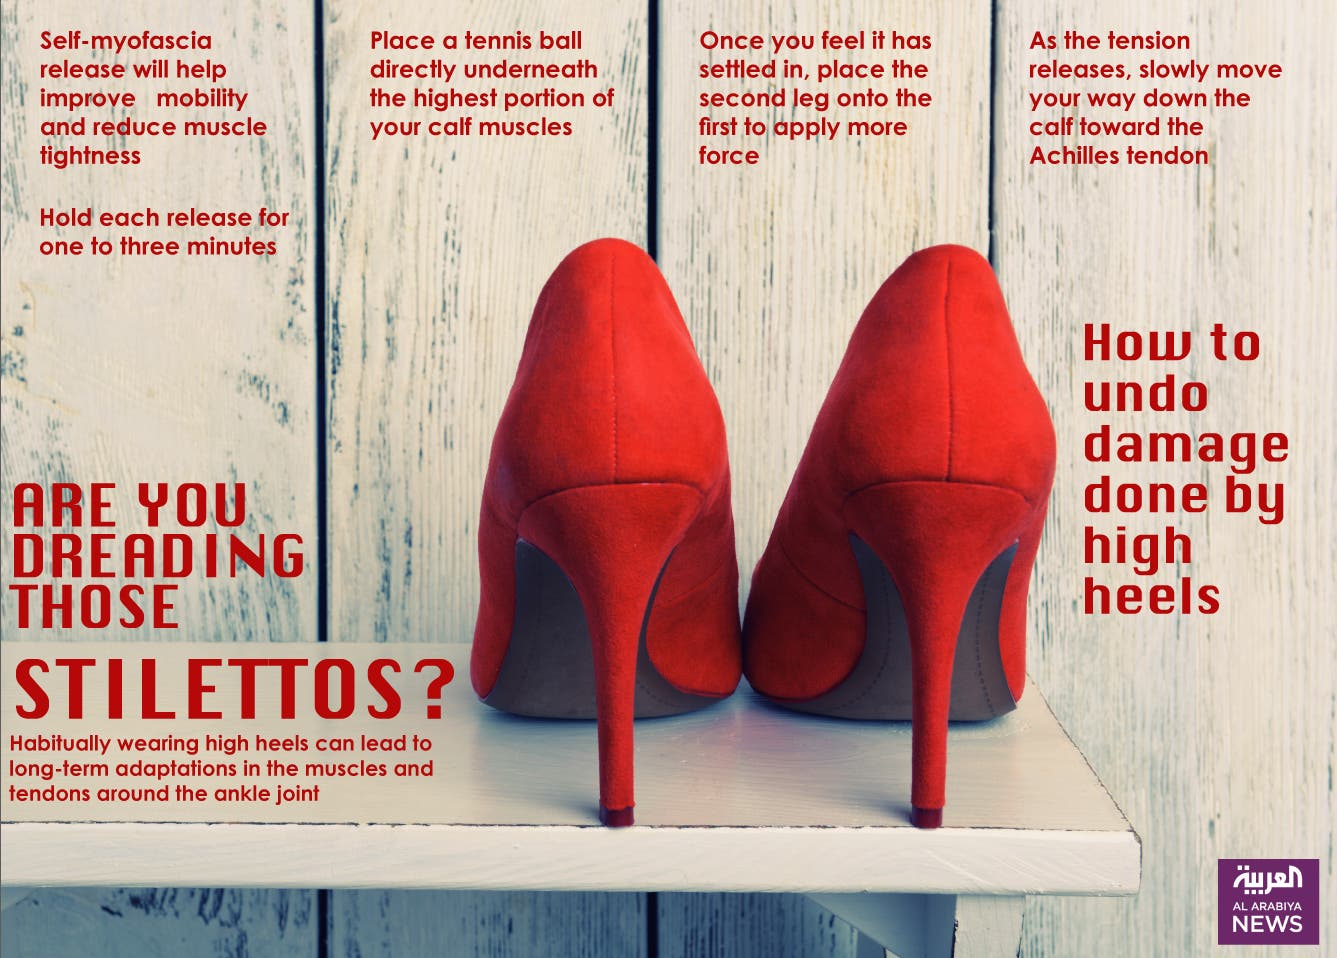 Infographic: Are you dreading those stilletos?